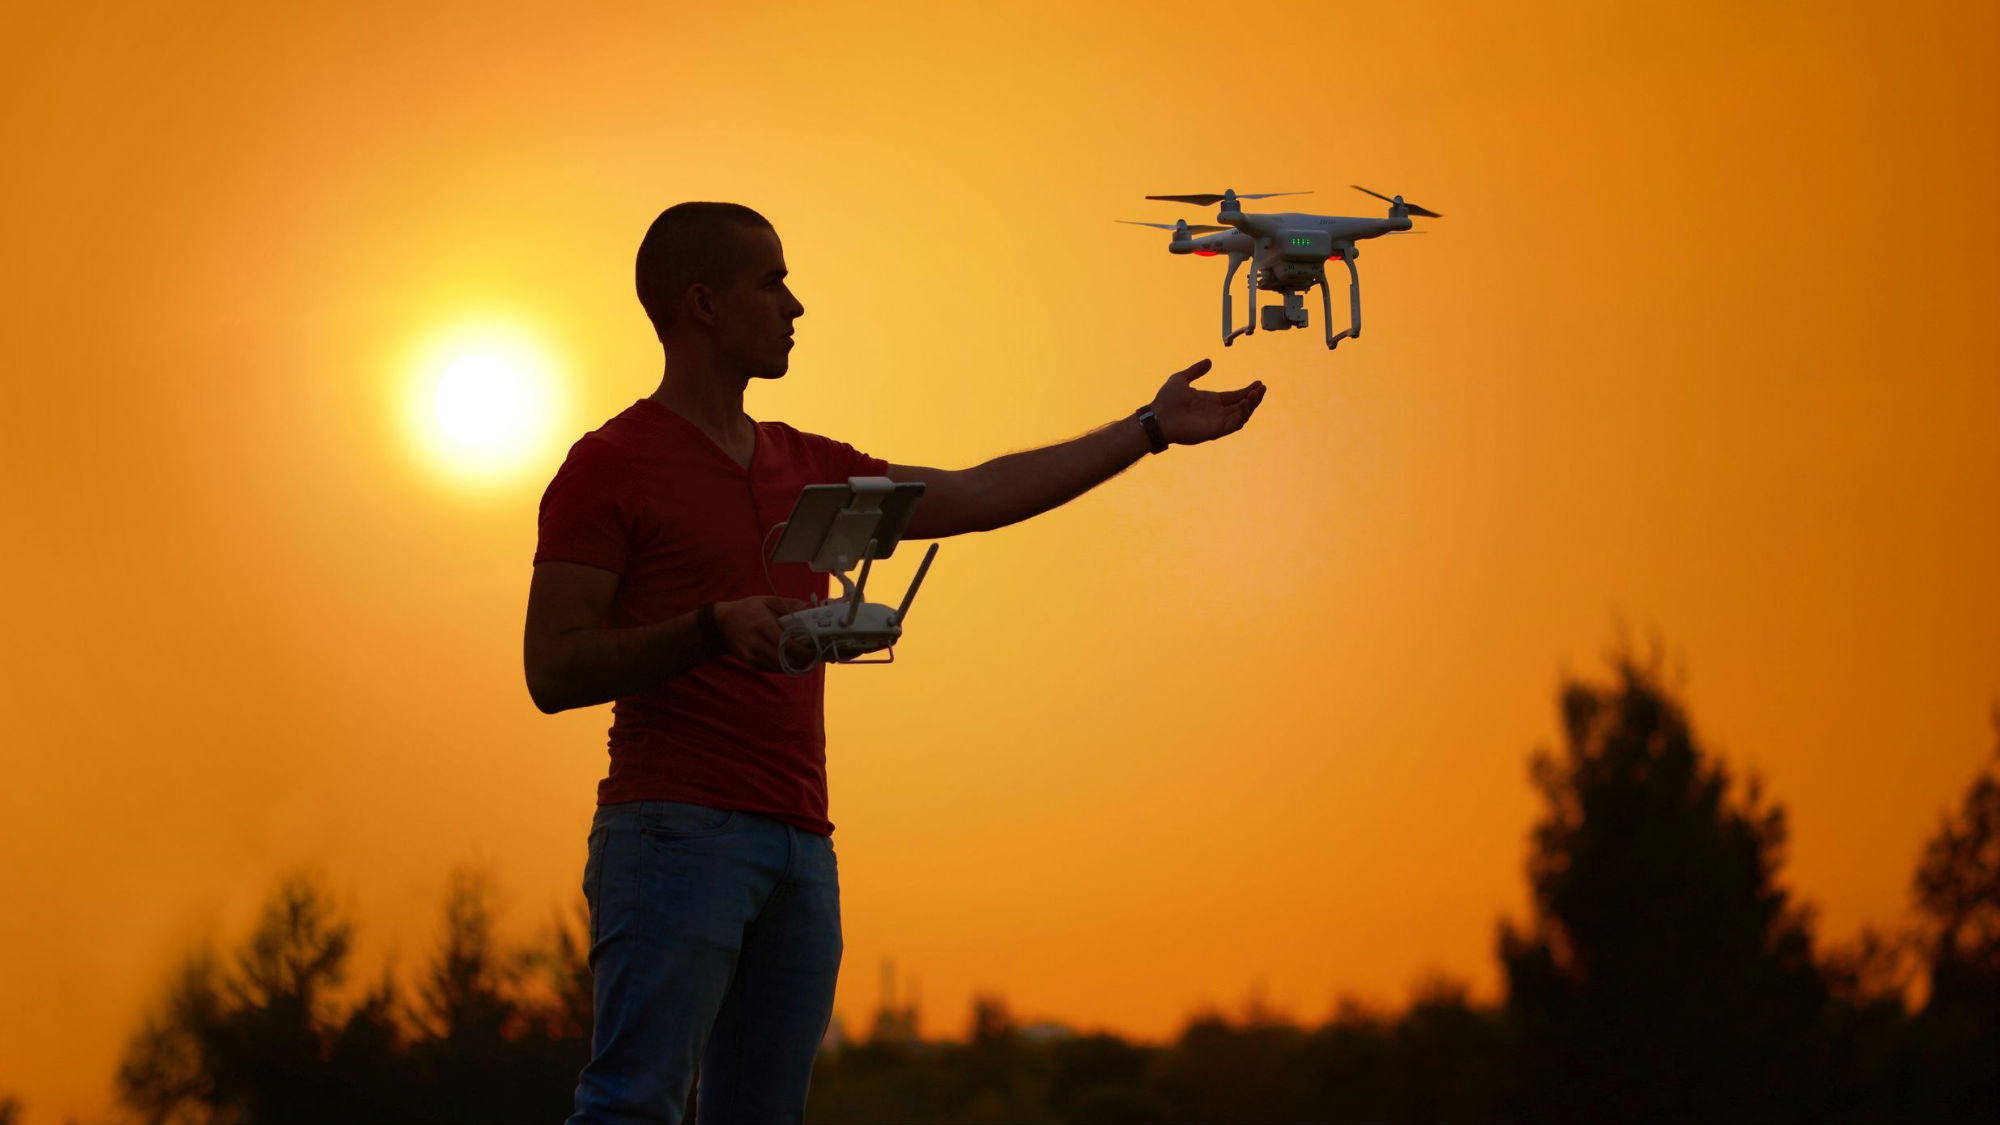 Regulations on civilian drones: Hobby pilot with a multicopter